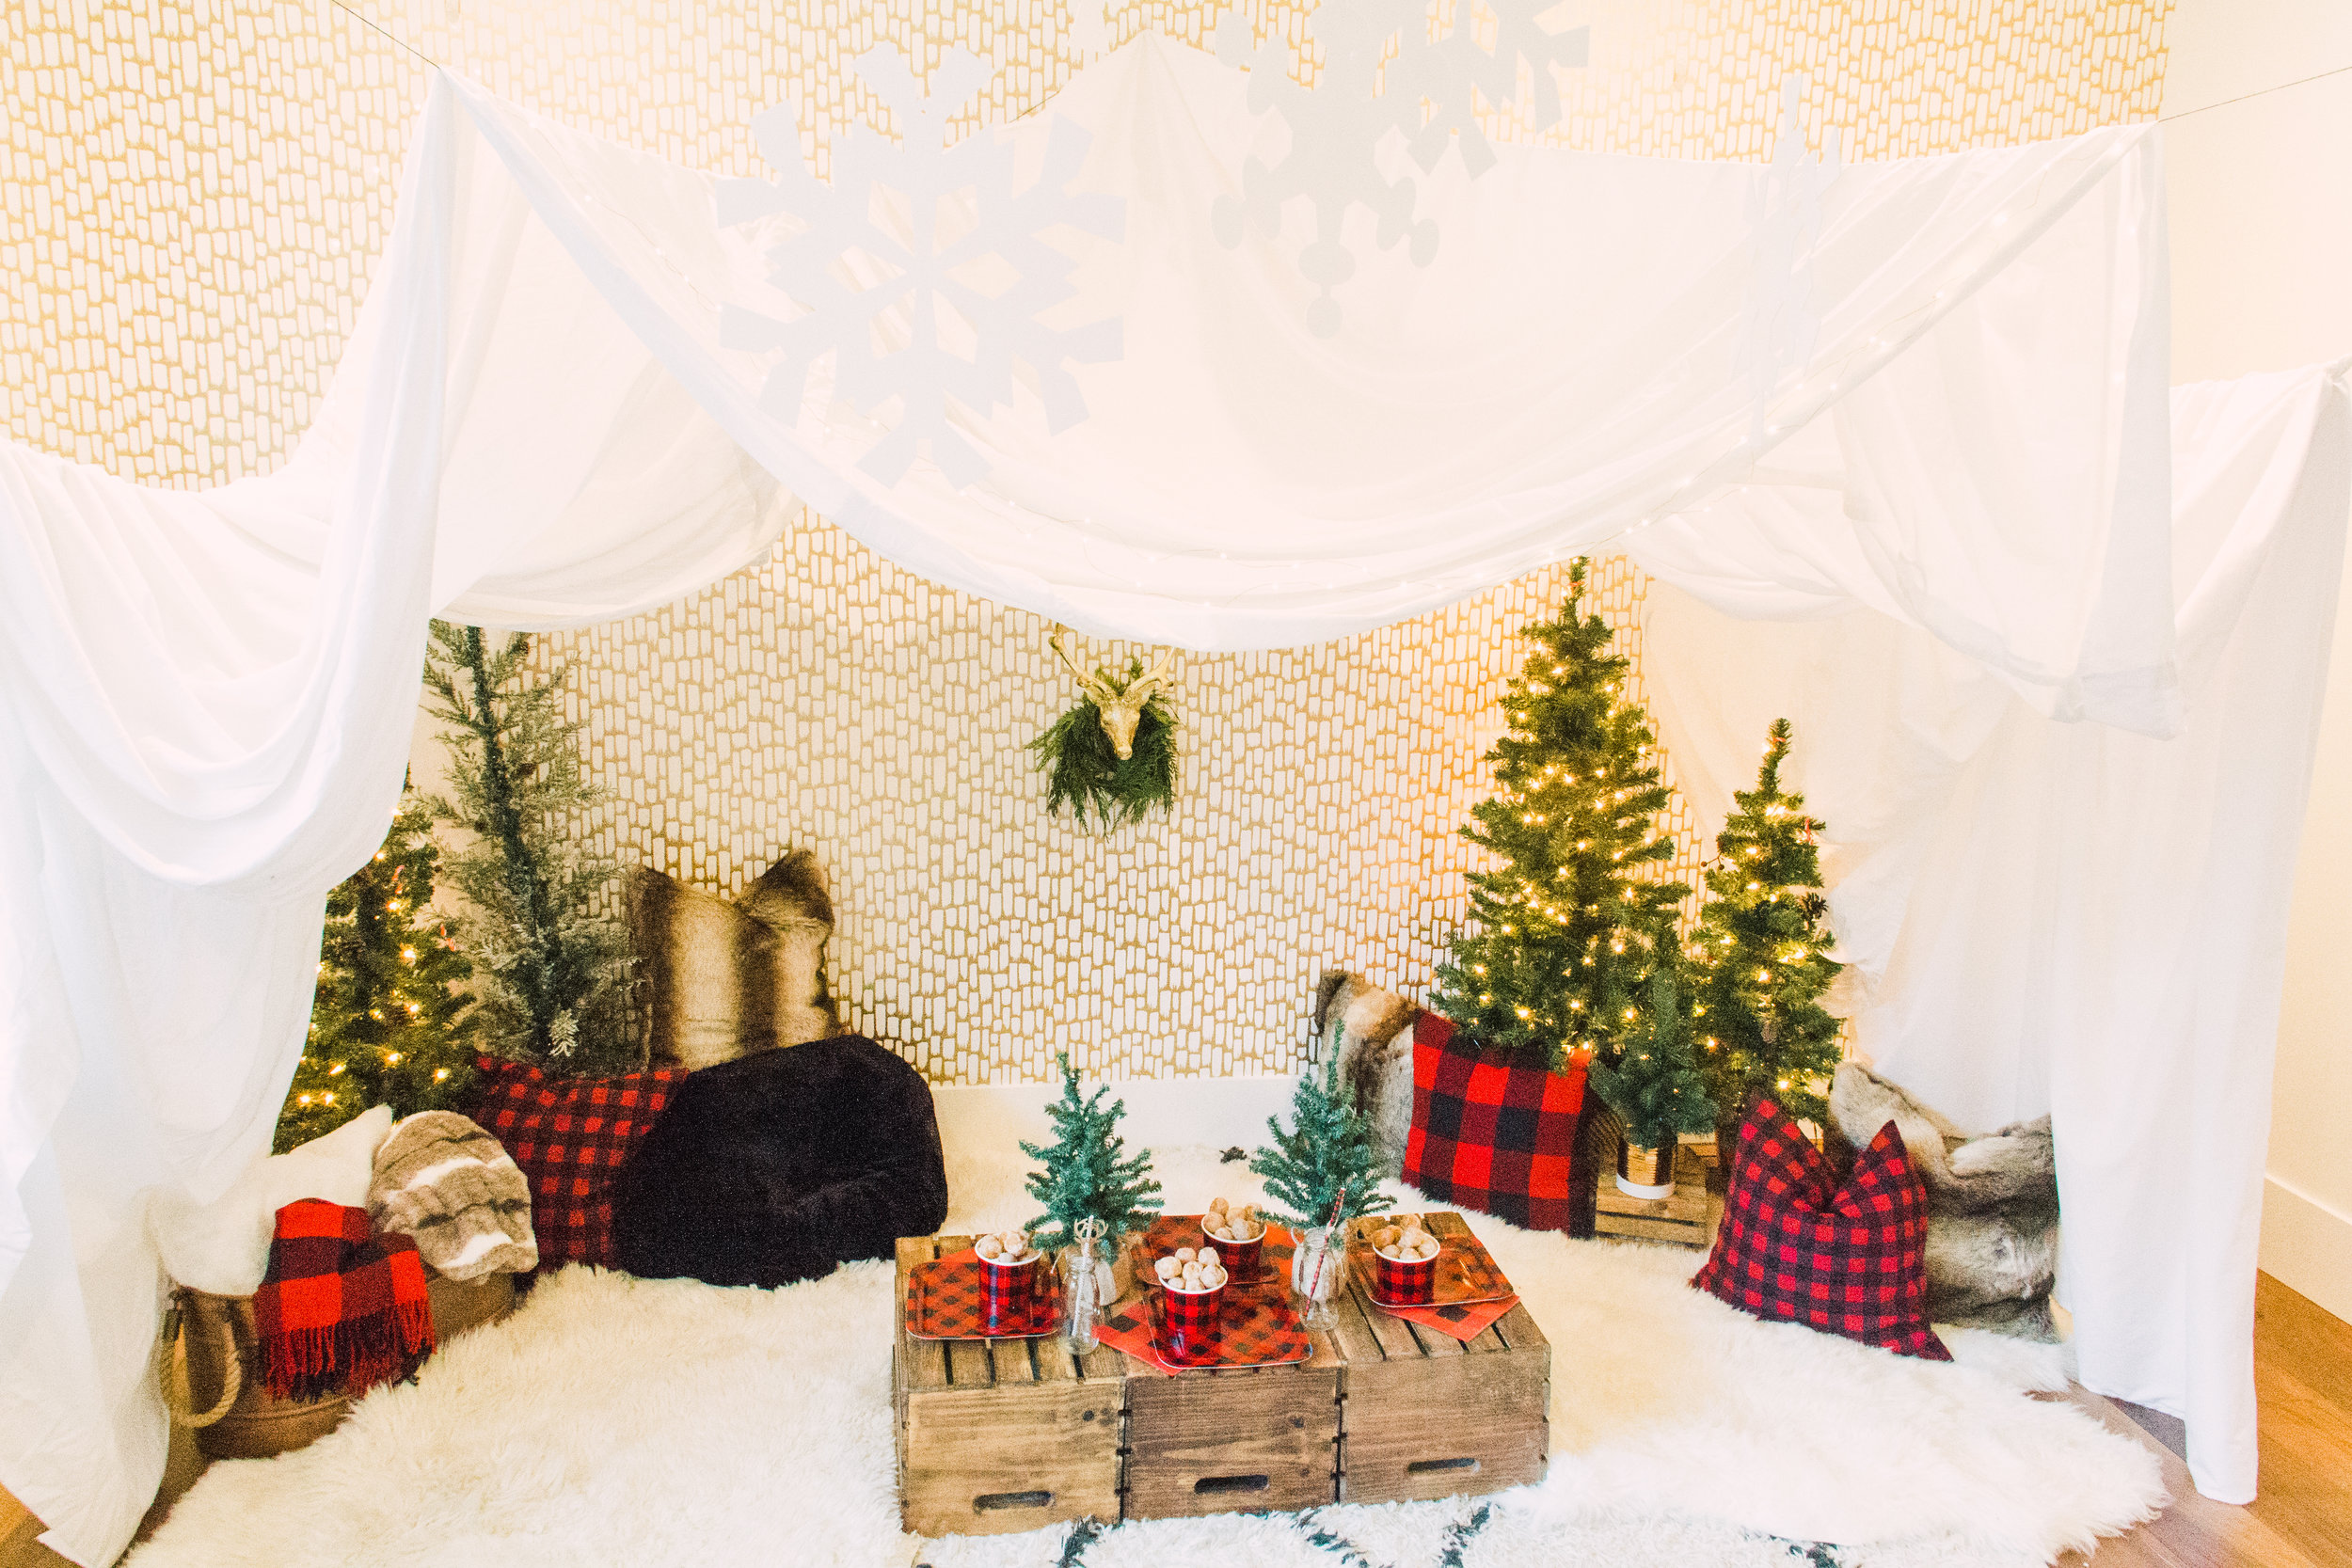 Inspired by This - The Holidays are always magical and so was our